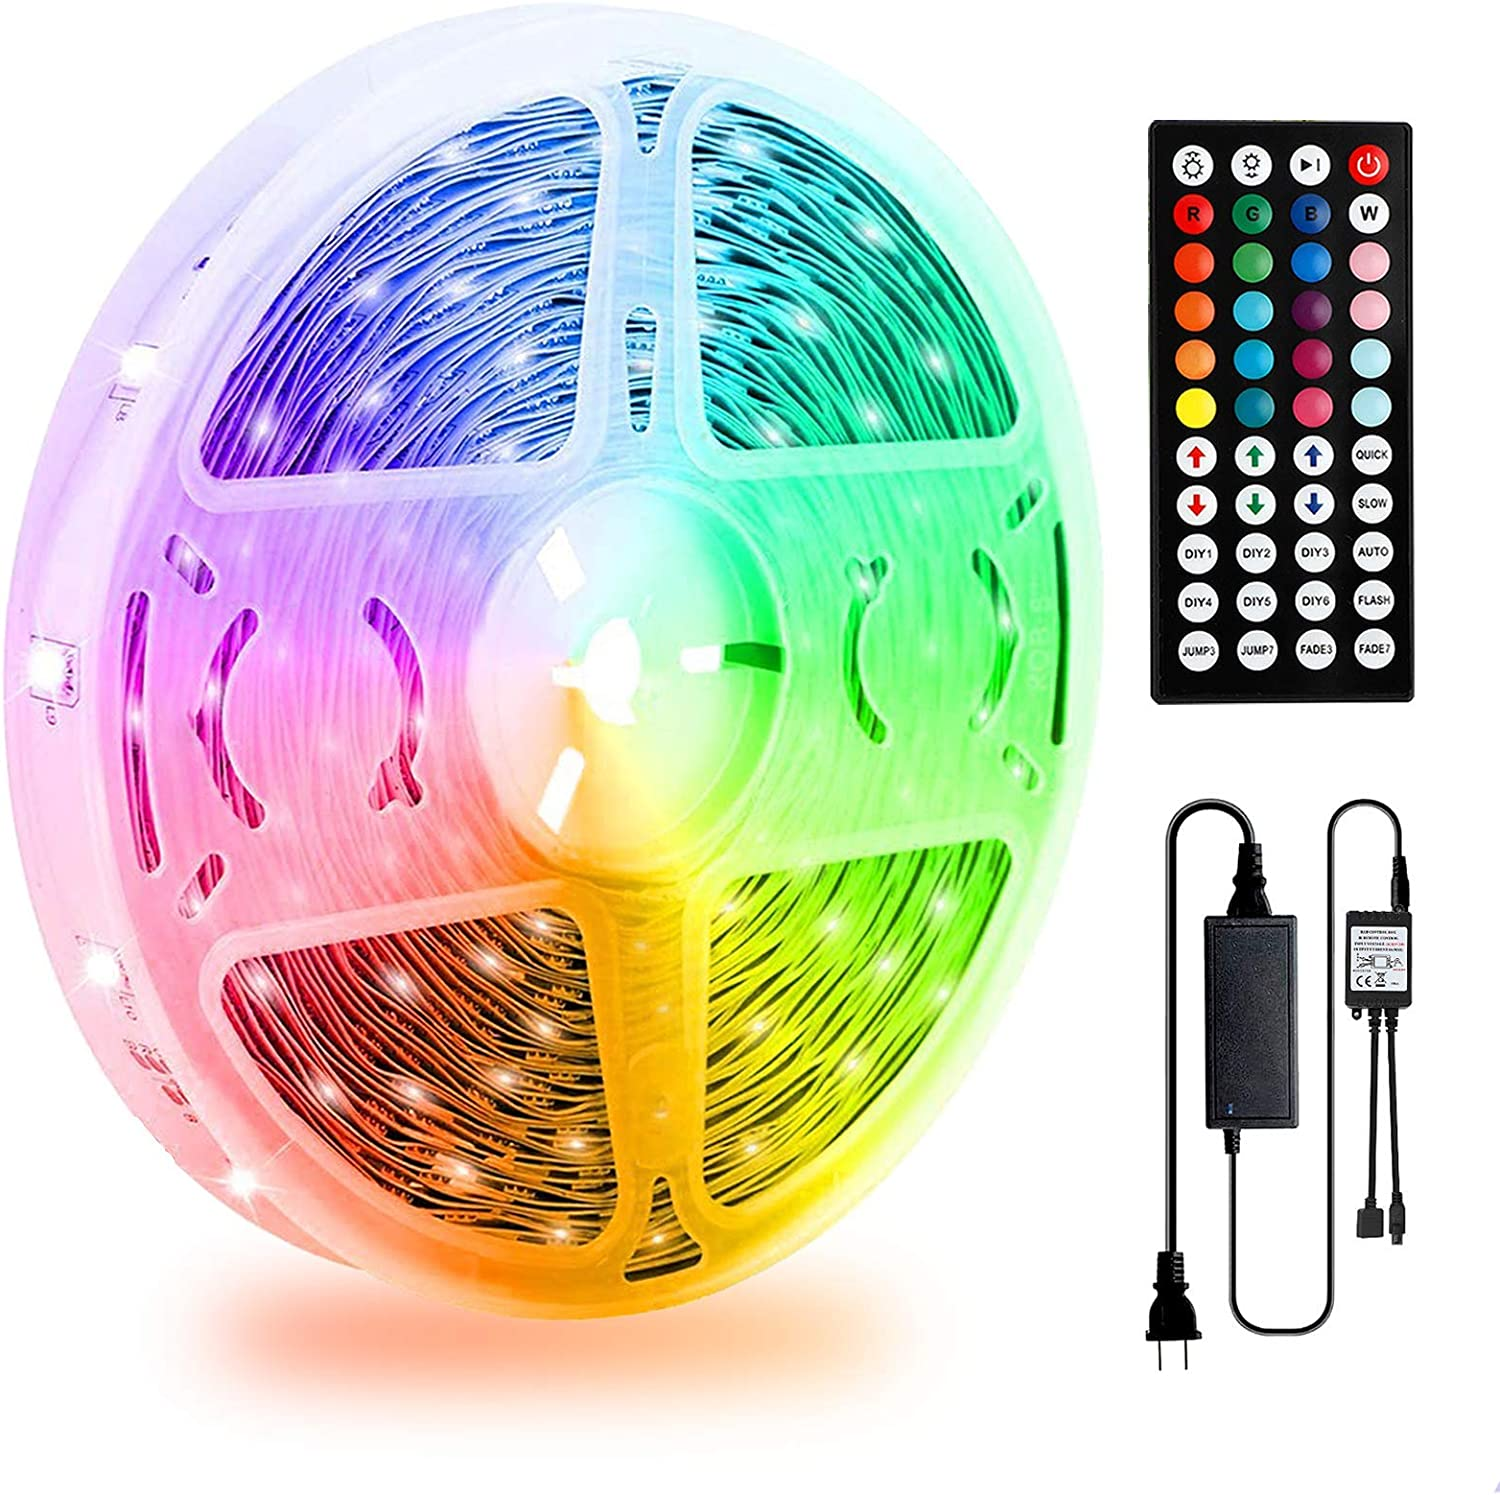 LED Strip Lights 32.8ft, Color Changing Strip Lights with 44 Key IR Remote, SMD 5050 RGB LED Strips with 12V Power Supply, Flexible LED Tape Lights for Bedroom Home Bar Party Christmas DIY Decoration